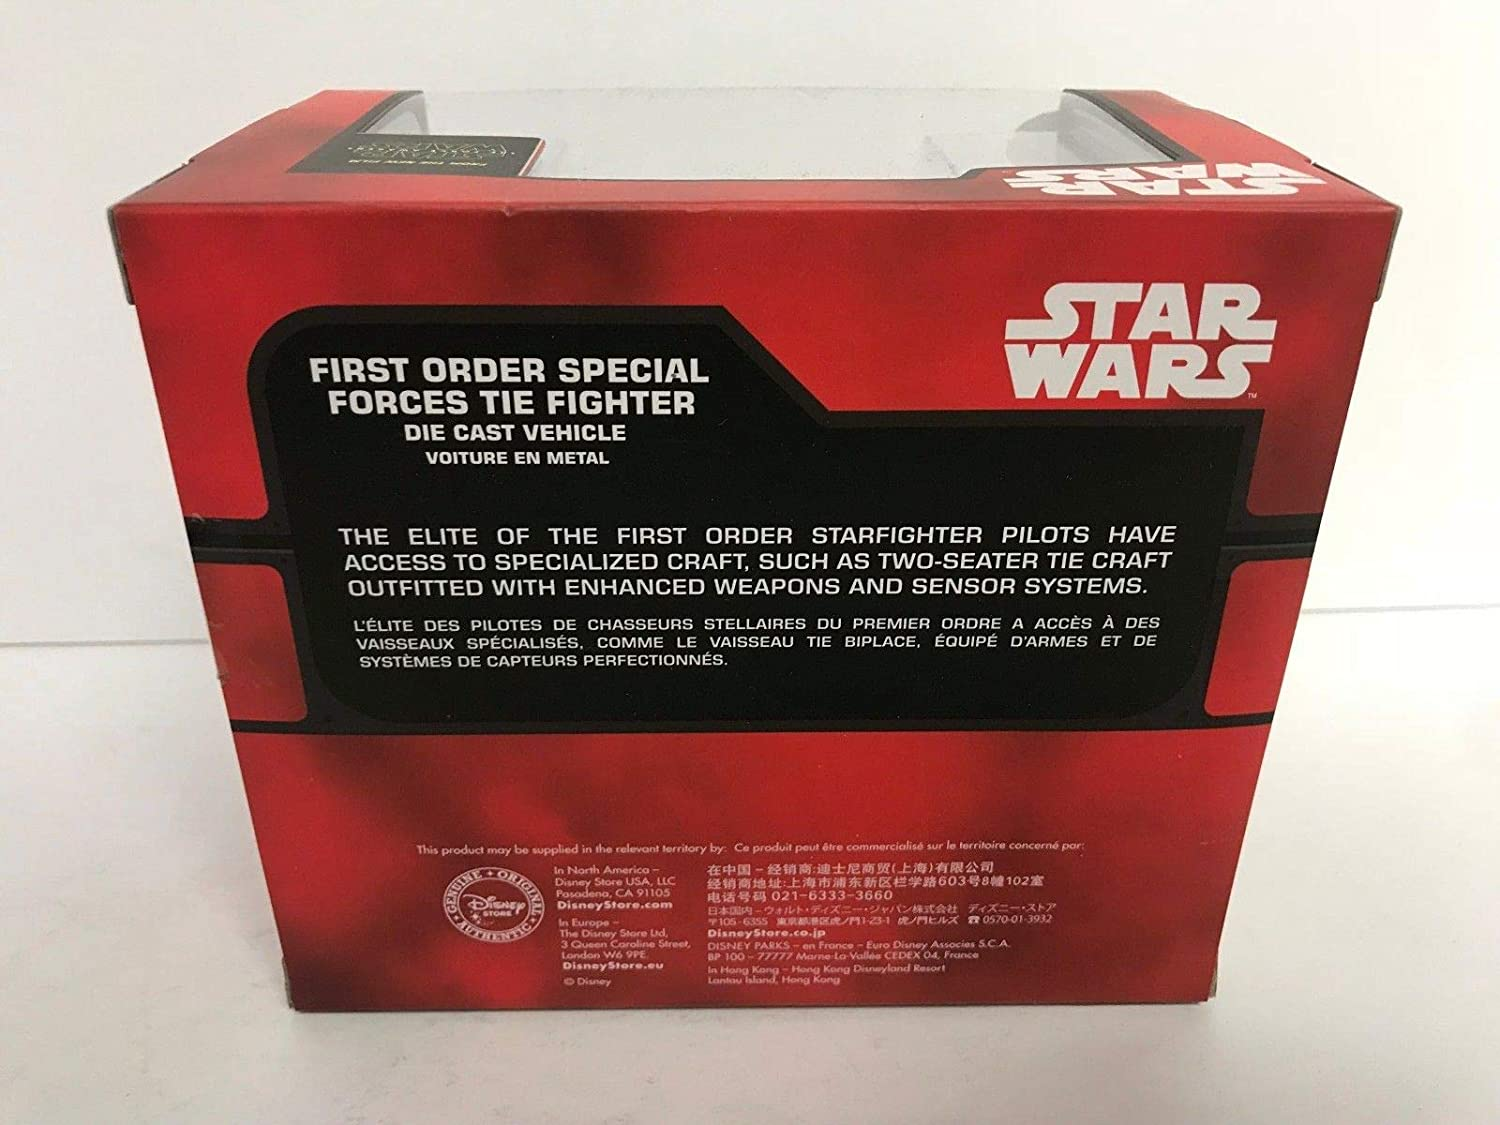 First Order Special Forces Tie Fighter STAR WARS die cast vehicle Disney Store at Amazons Sports Collectibles Store